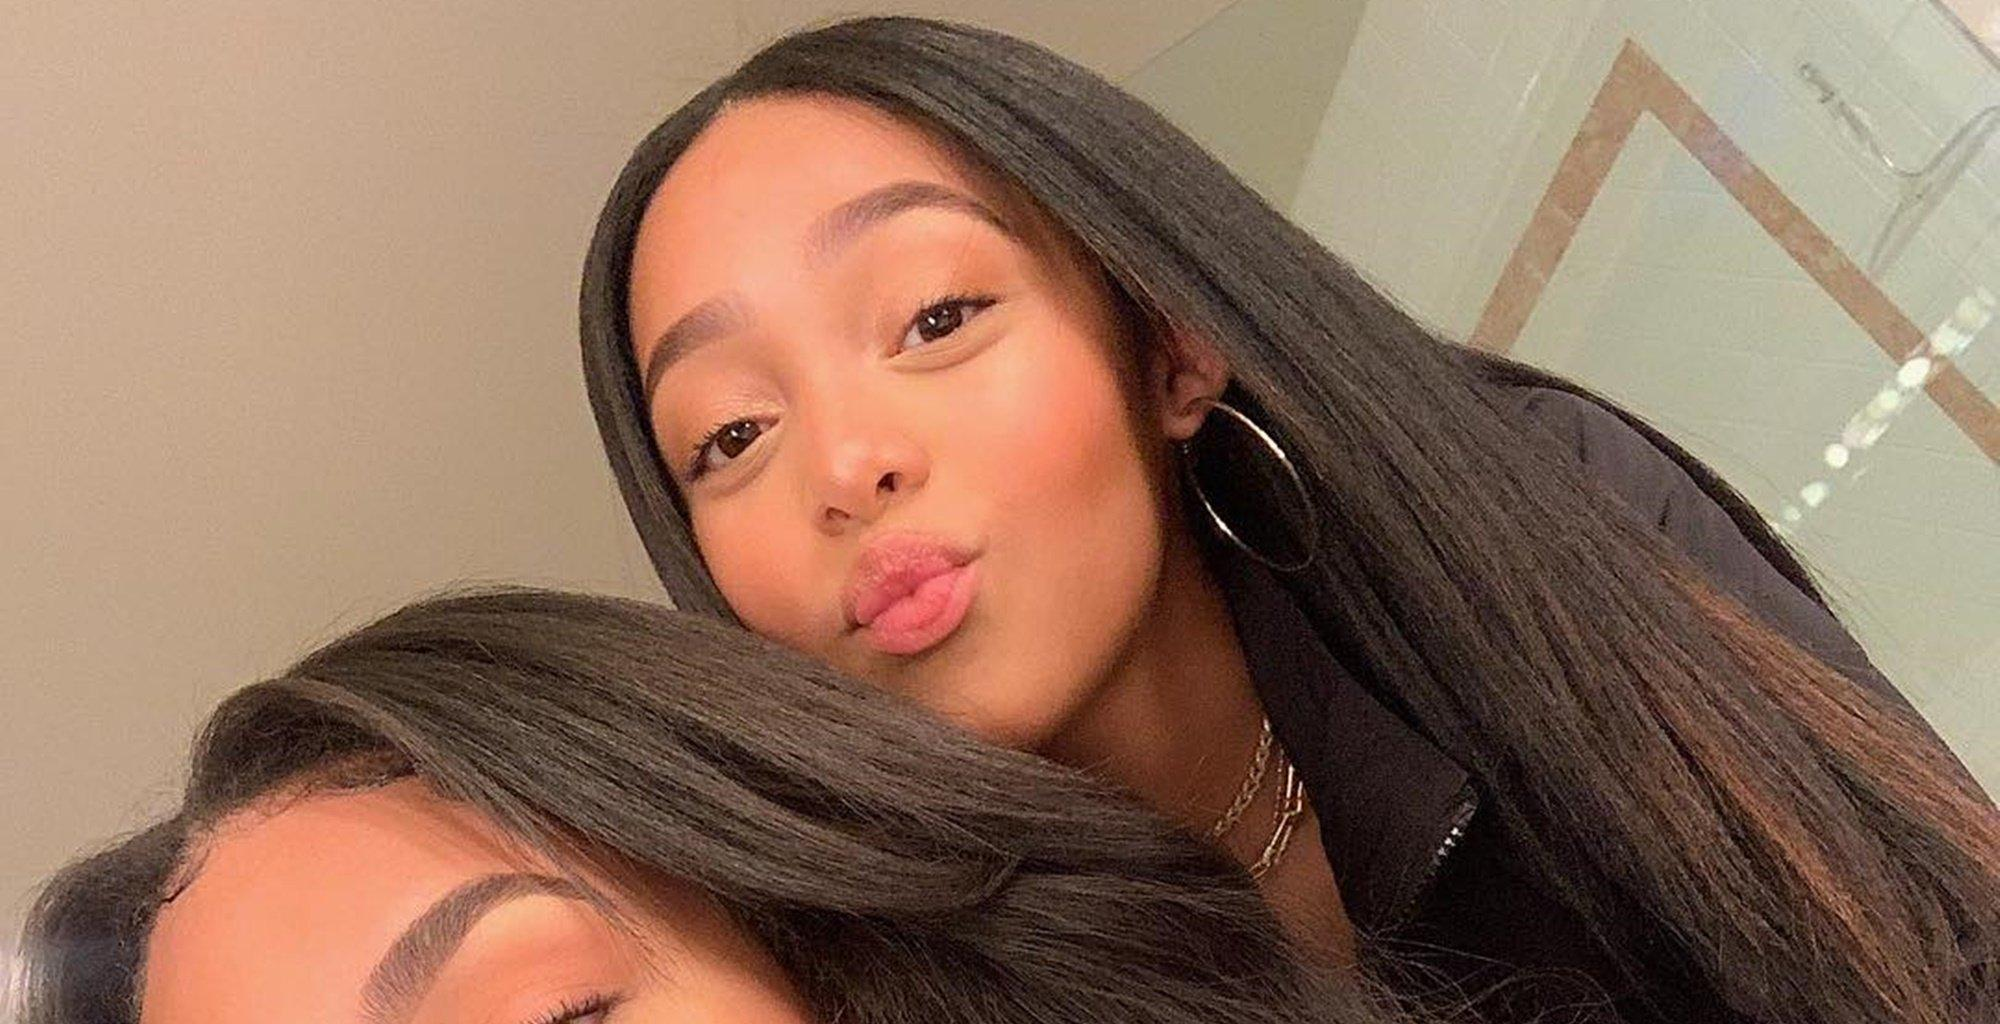 Jordyn Woods Is Twinning With Her 'Copy/Paste' Sister - Check Out The Gorgeous Ladies In the Video